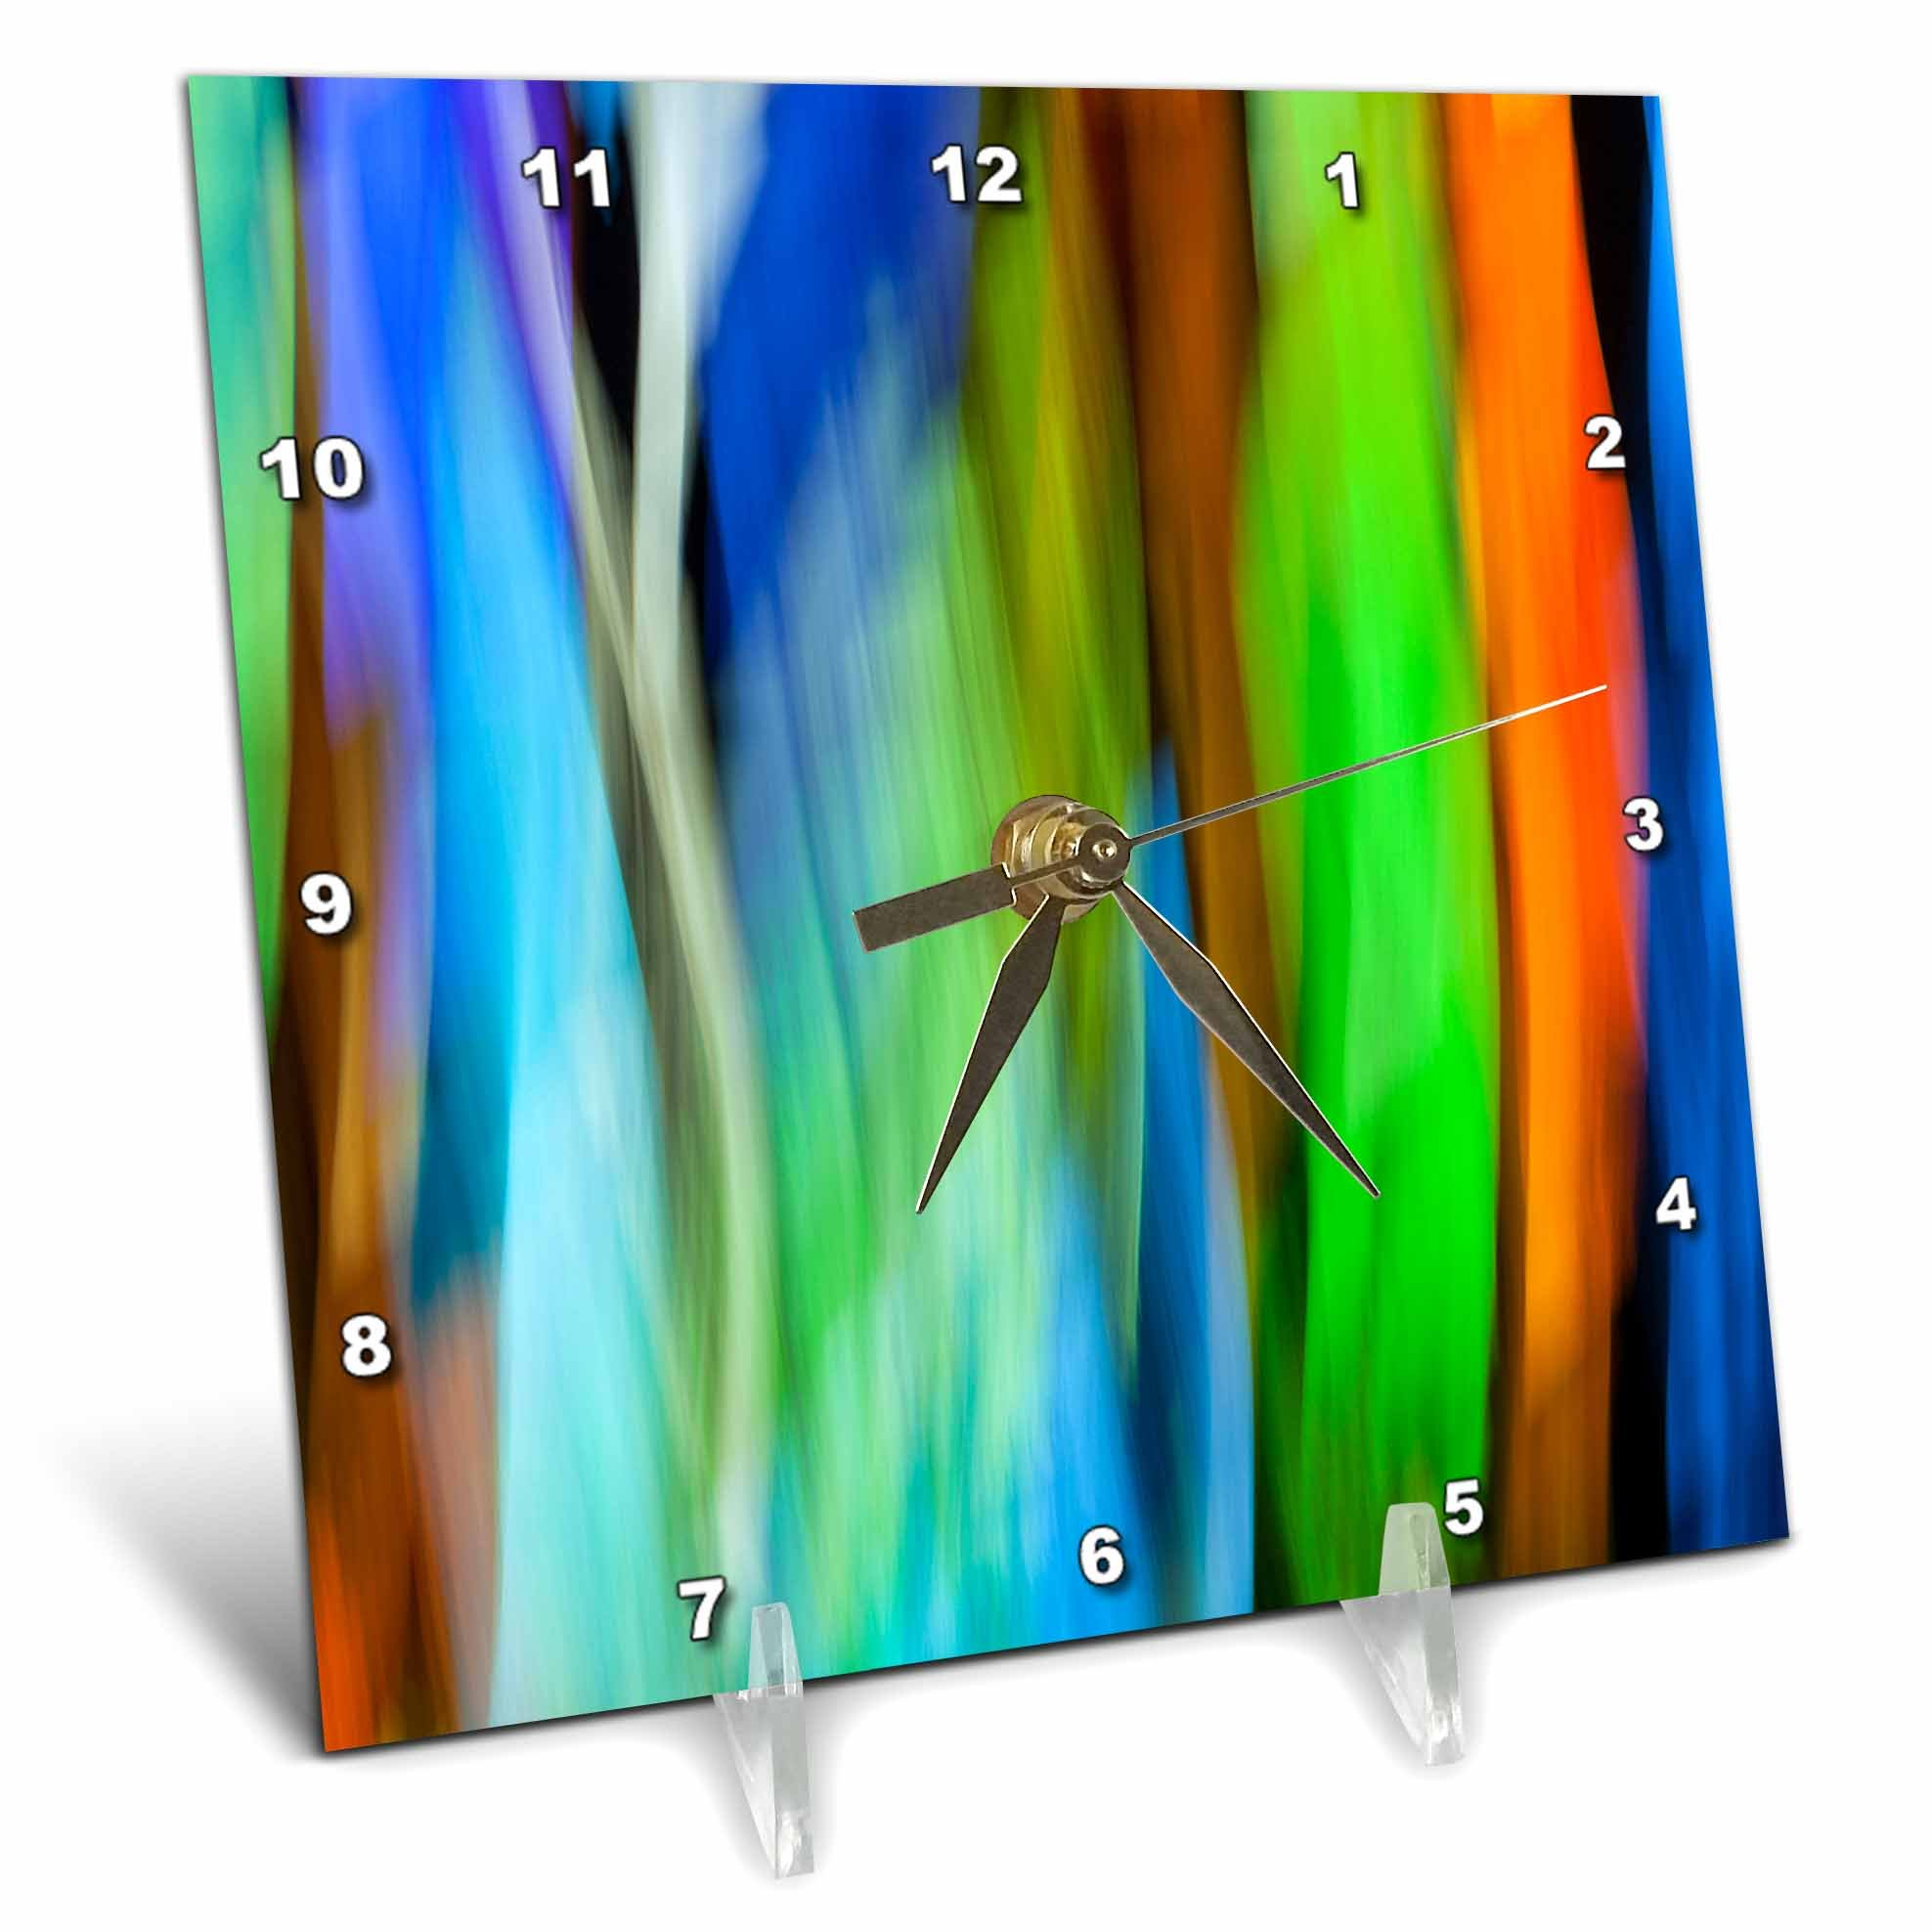 3dRose Danita Delimont - Abstracts - A motion blur of a stain glass window. - 6x6 Desk Clock (dc_276400_1)